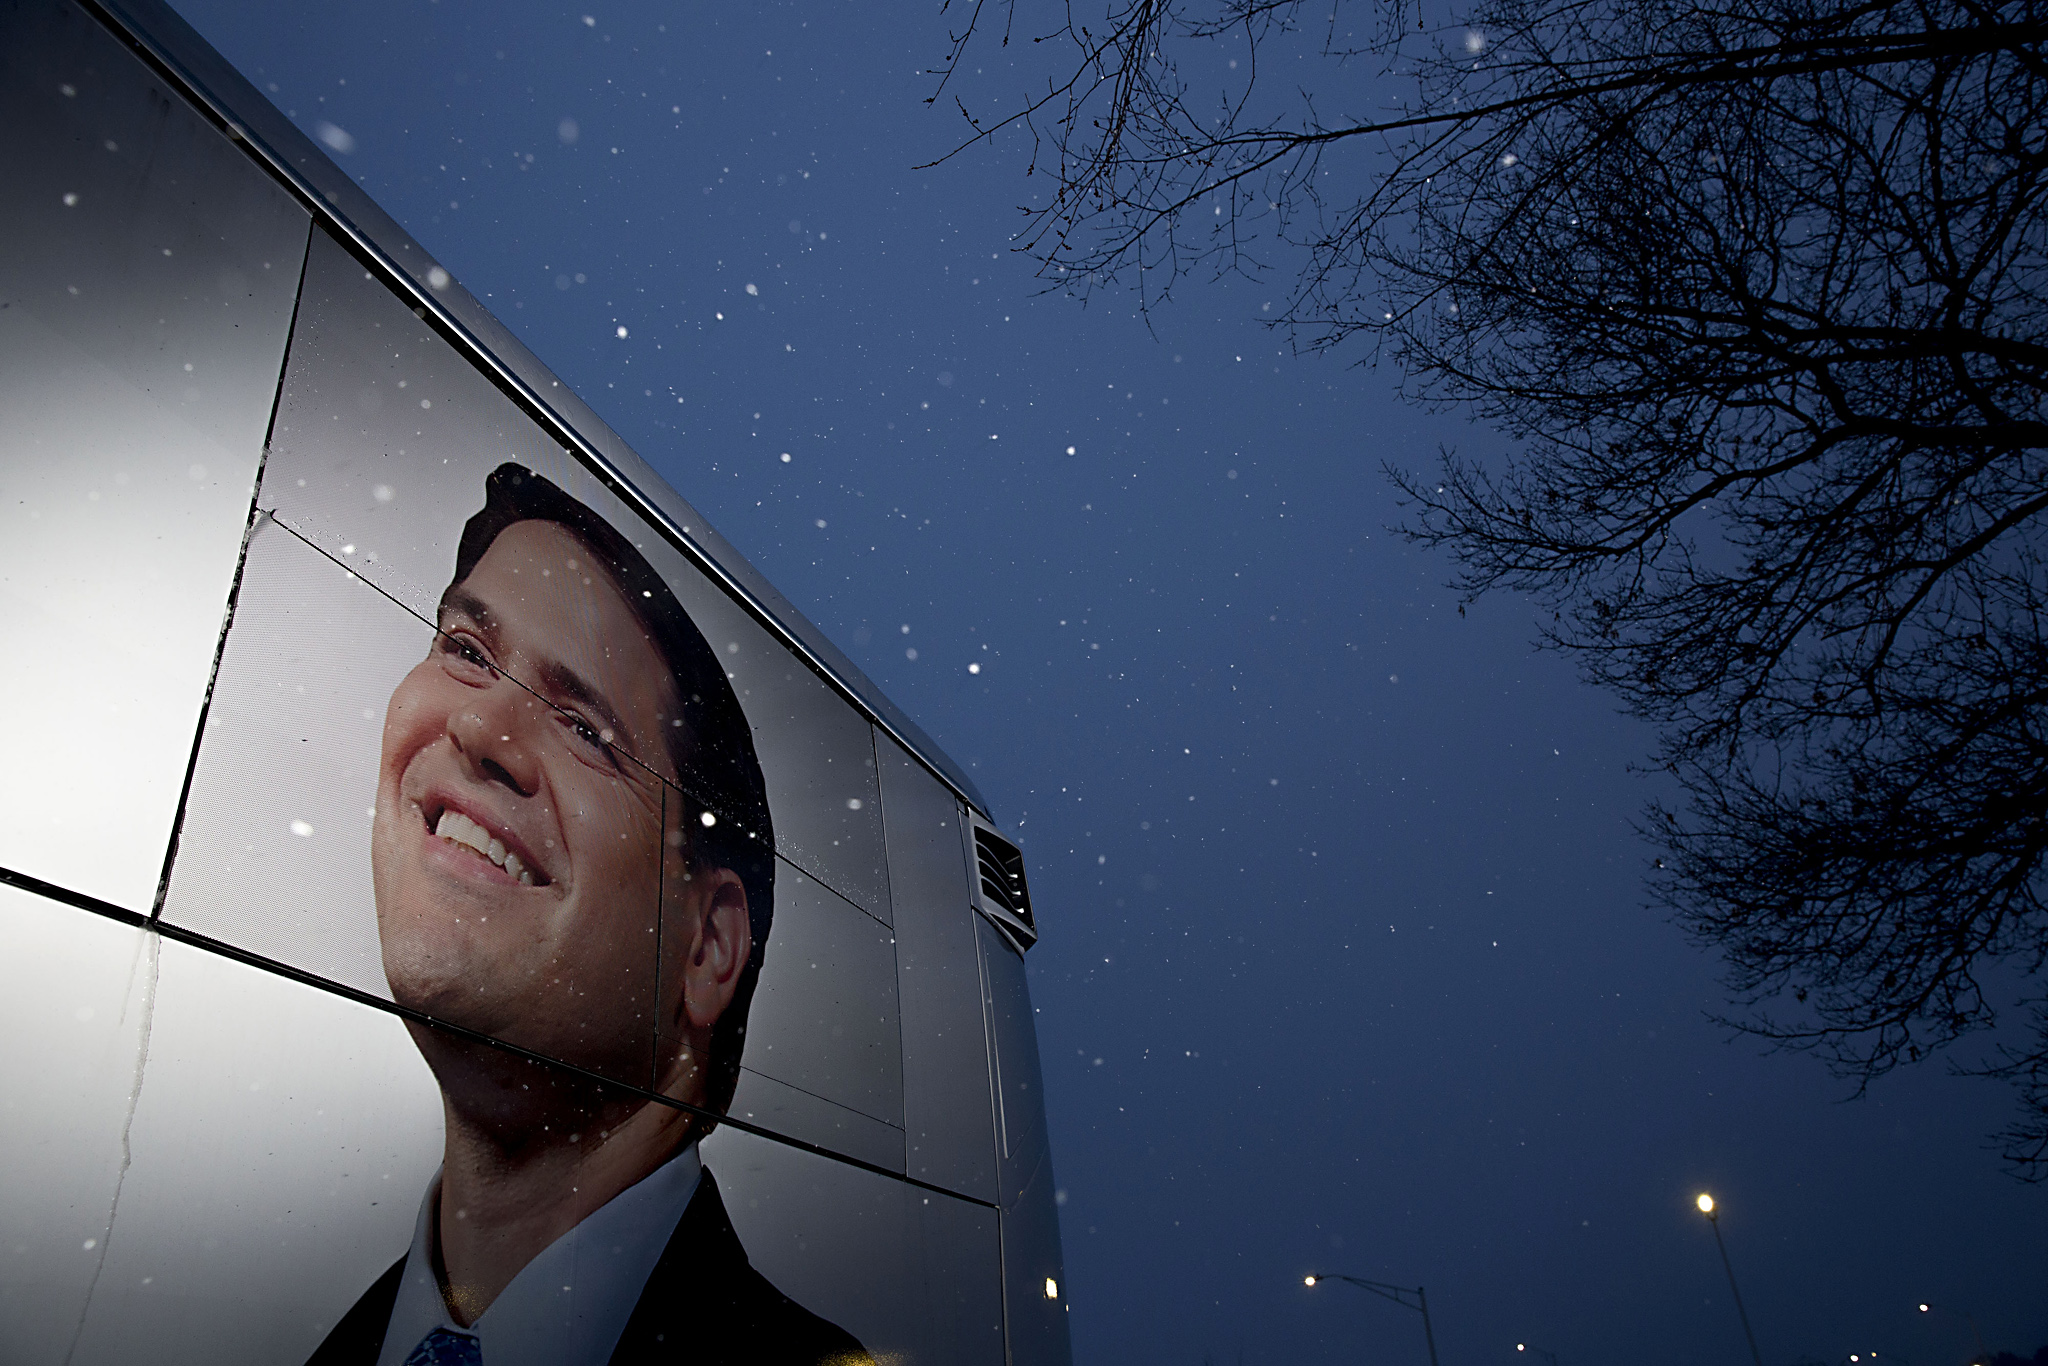 Presidential Candidate Marco Rubio Holds Retail Campaign Stops...An image of Senator Marco Rubio, a Republican from Florida and 2016 presidential candidate, is seen on his campaign bus as it sits outside the building which houses his campaign headquarters in Manchester, New Hampshire, U.S., on Monday, Feb. 8, 2016. Rubio, who surged to second place in polls after coming in third in the Iowa caucuses, spent Sunday trying to extinguish a political brushfire after he delivered the same canned answer three times within a matter of minutes at Saturday's presidential debate. Photographer: Daniel Acker/Bloomberg